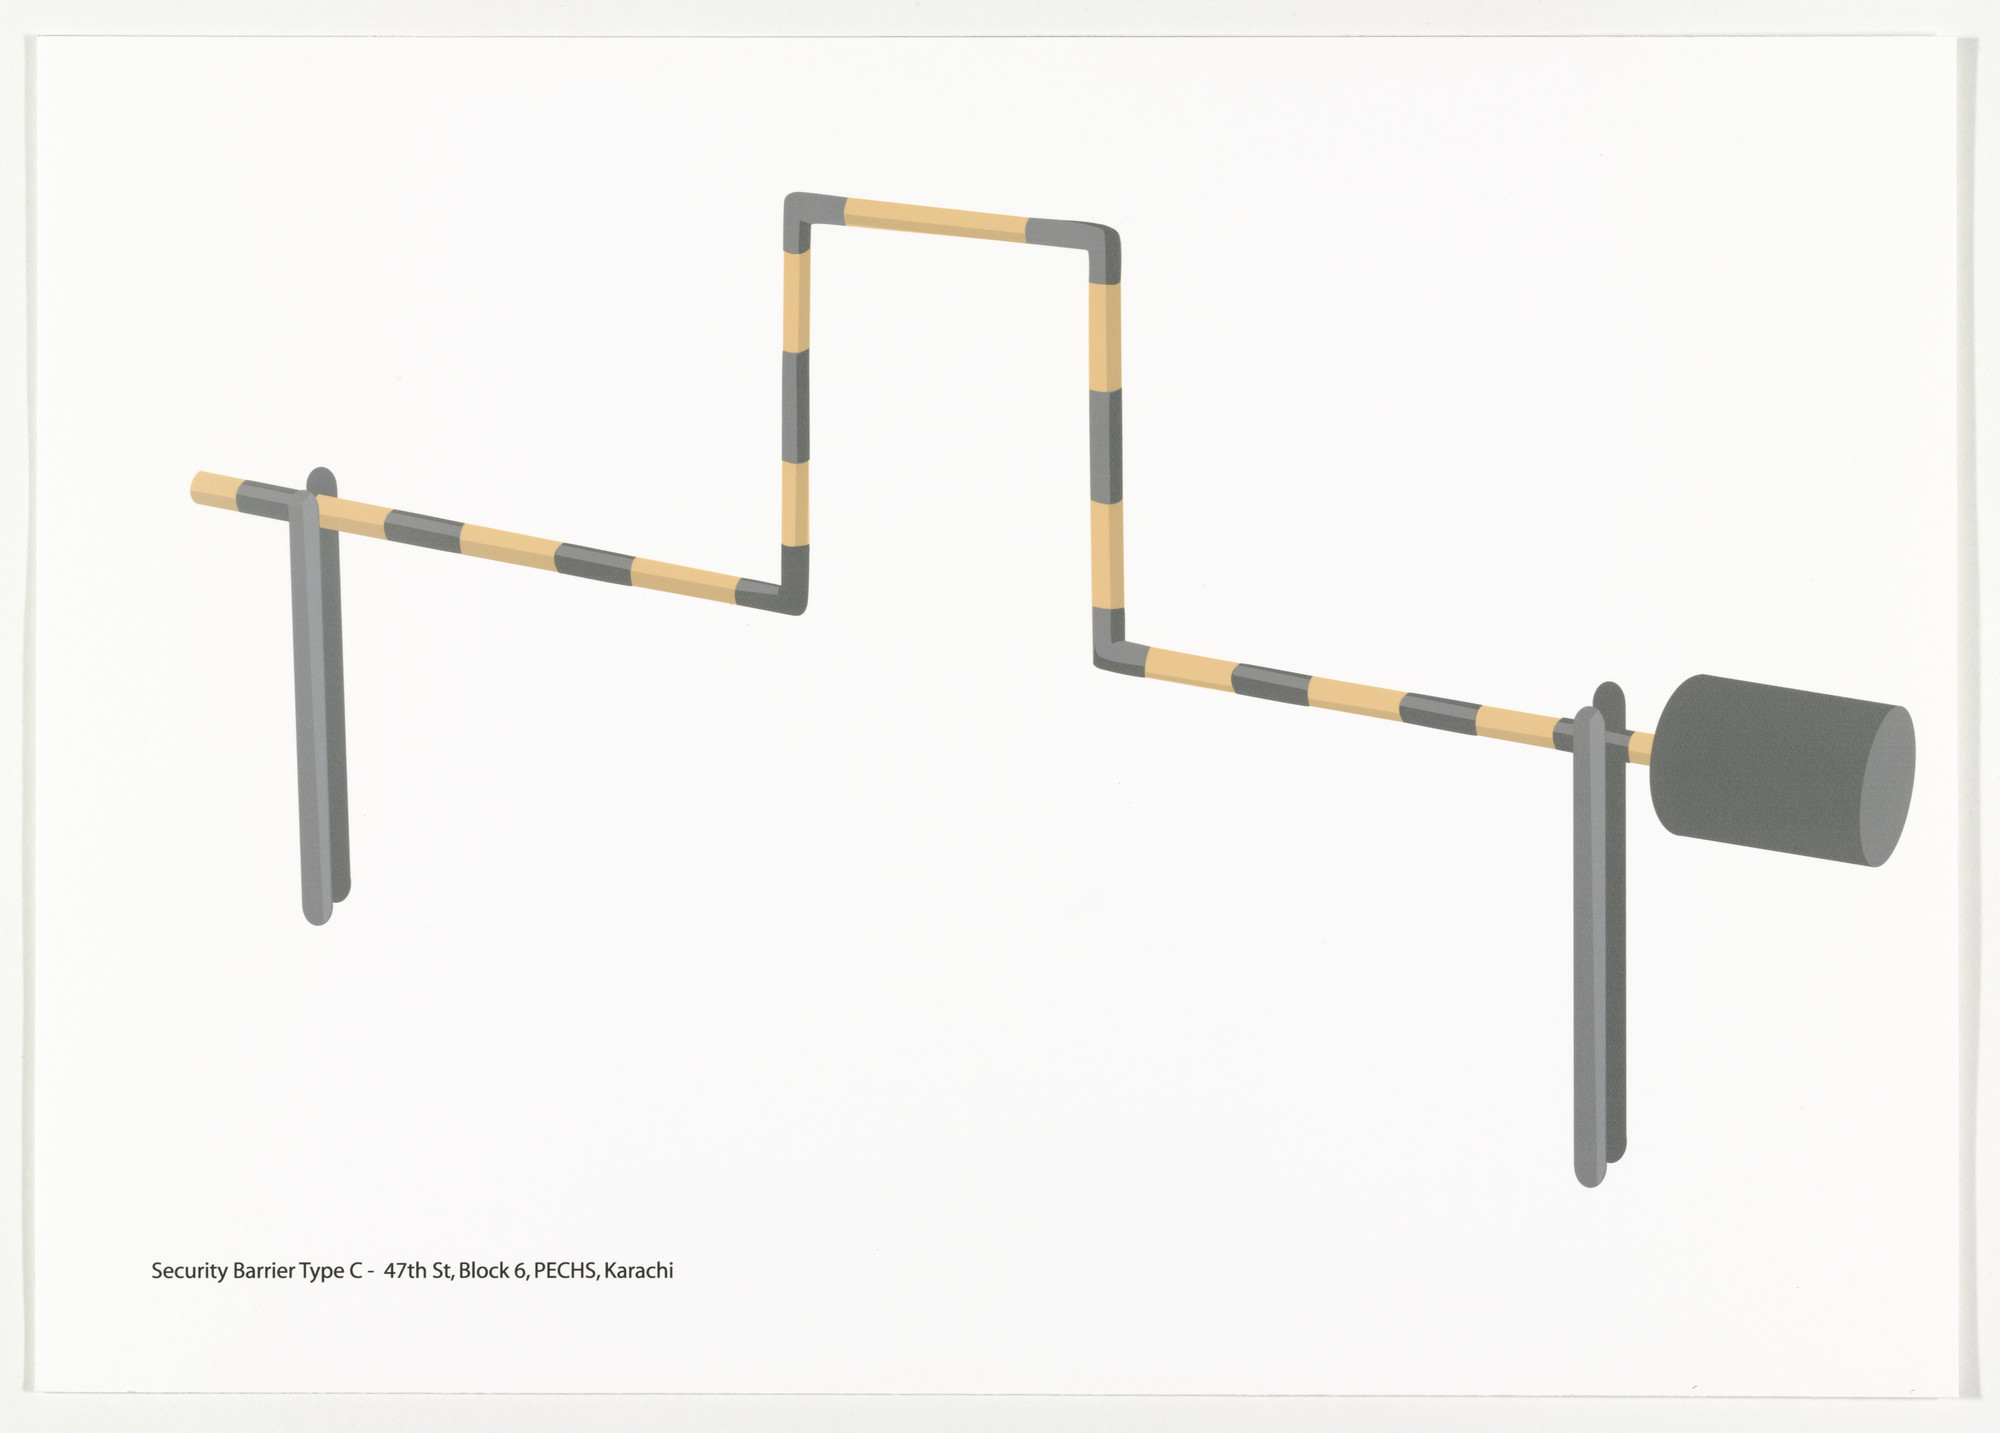 Bani Abidi. Security Barrier Type C from Security Barriers A-L. 2008